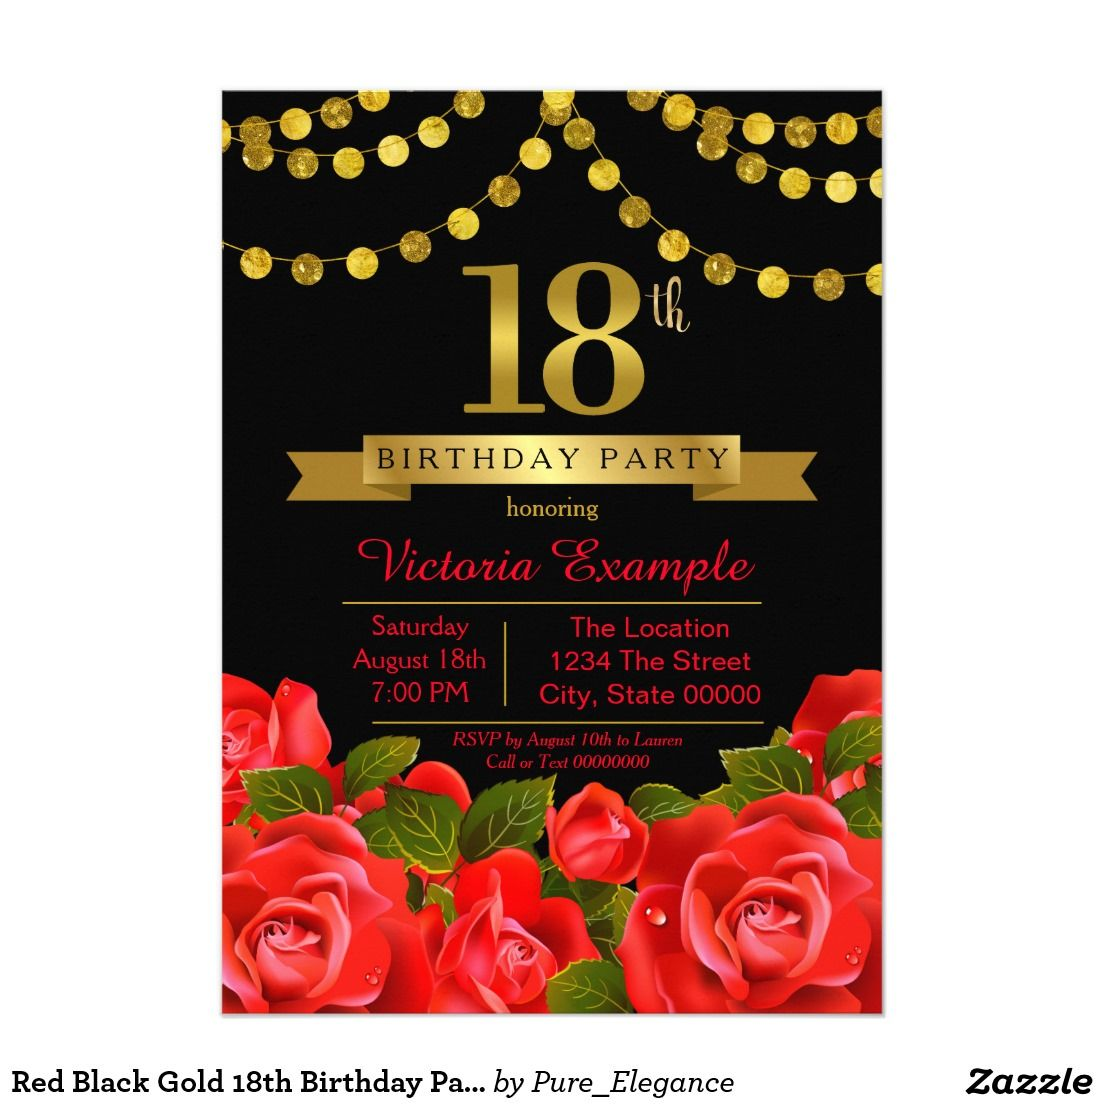 Red Black Gold 18th Birthday Party Card